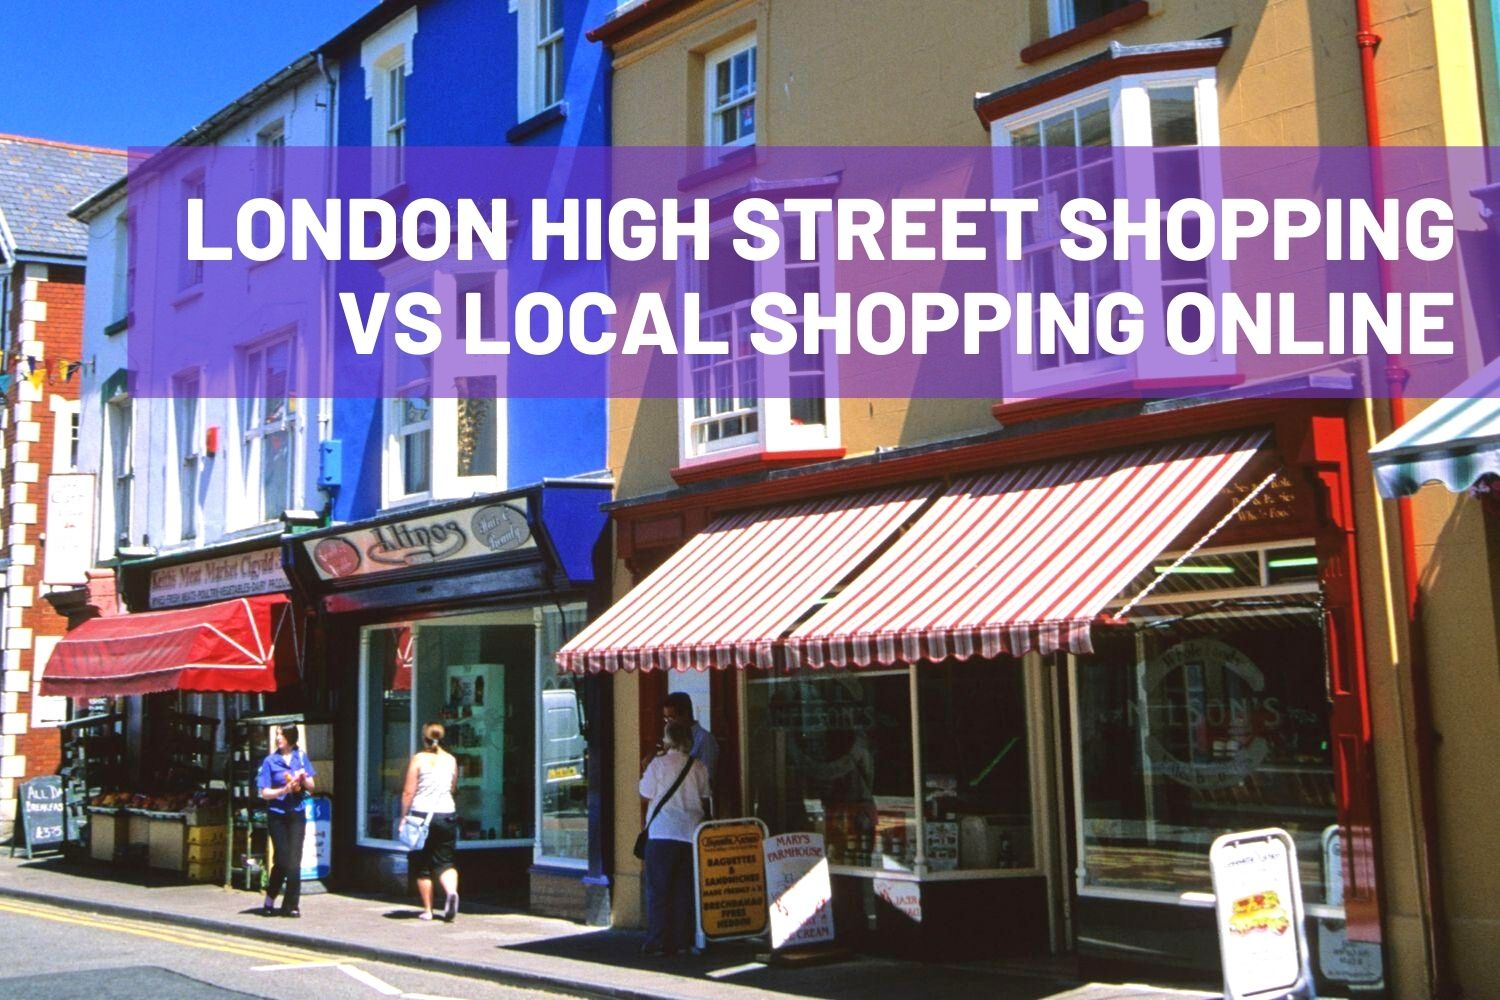 London High Street Shopping vs Local Shopping Online